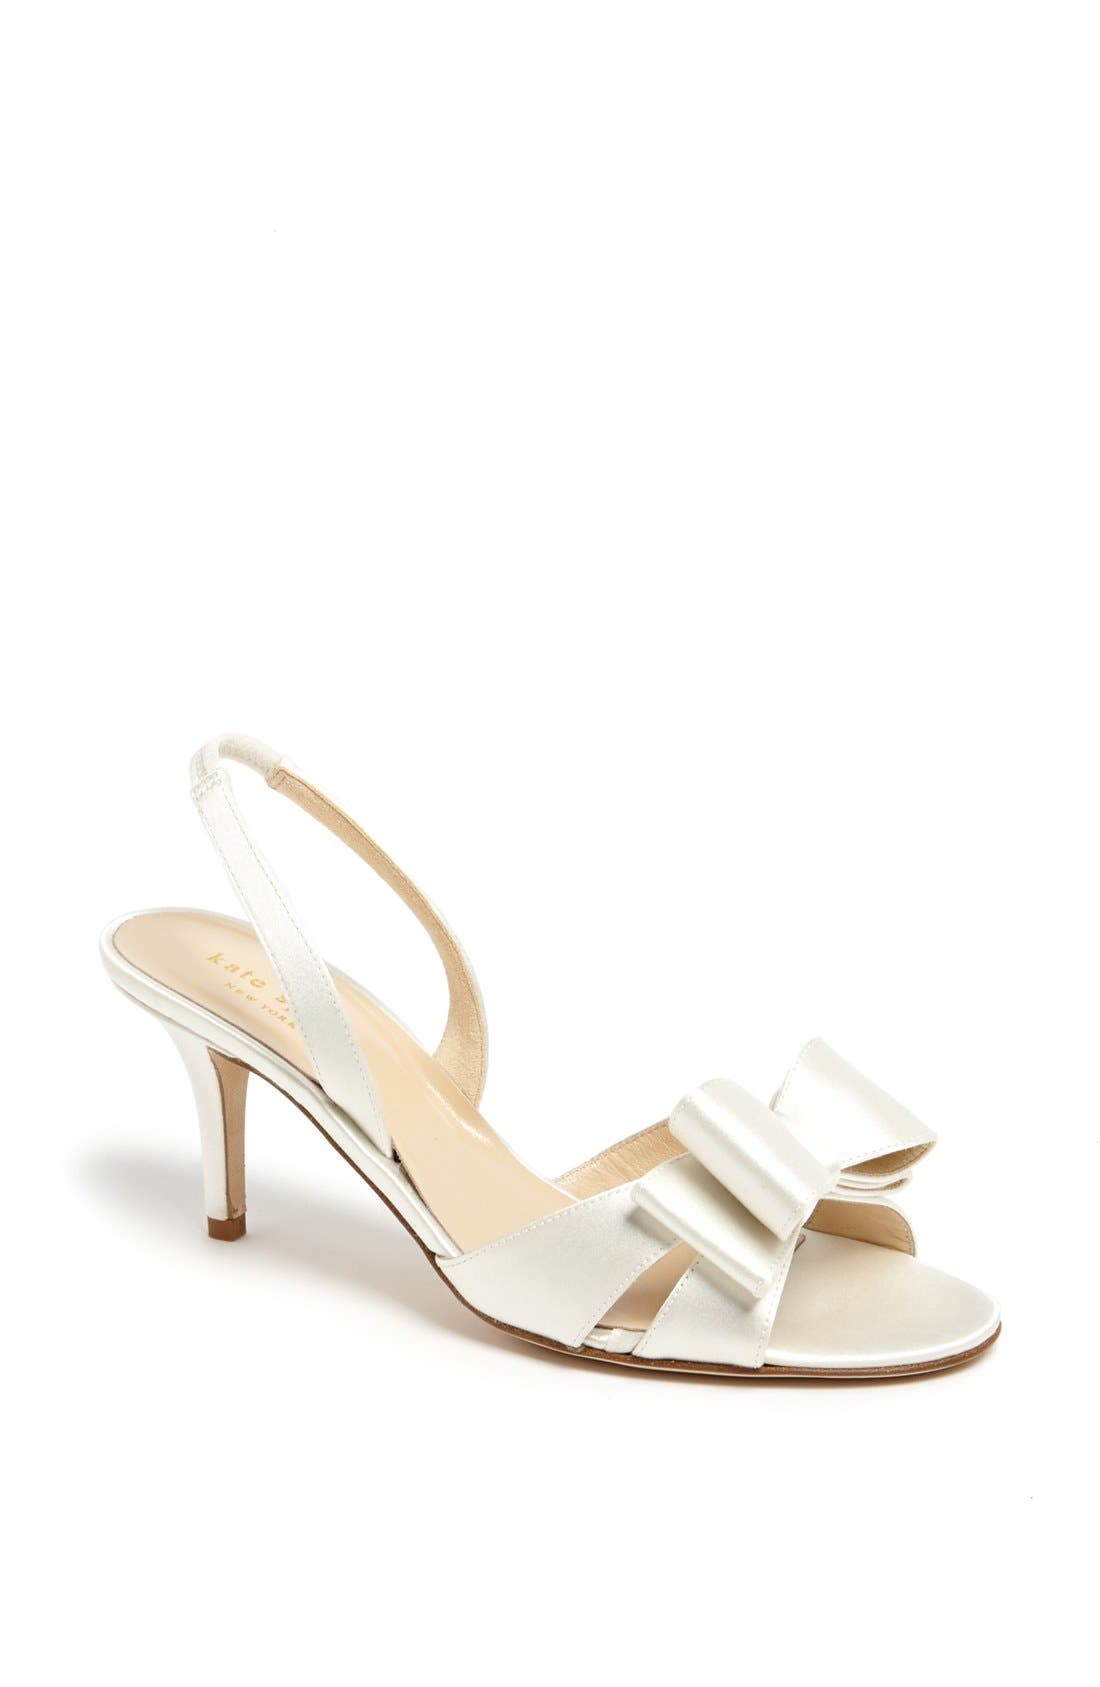 Main Image - kate spade new york 'micah' satin sandal